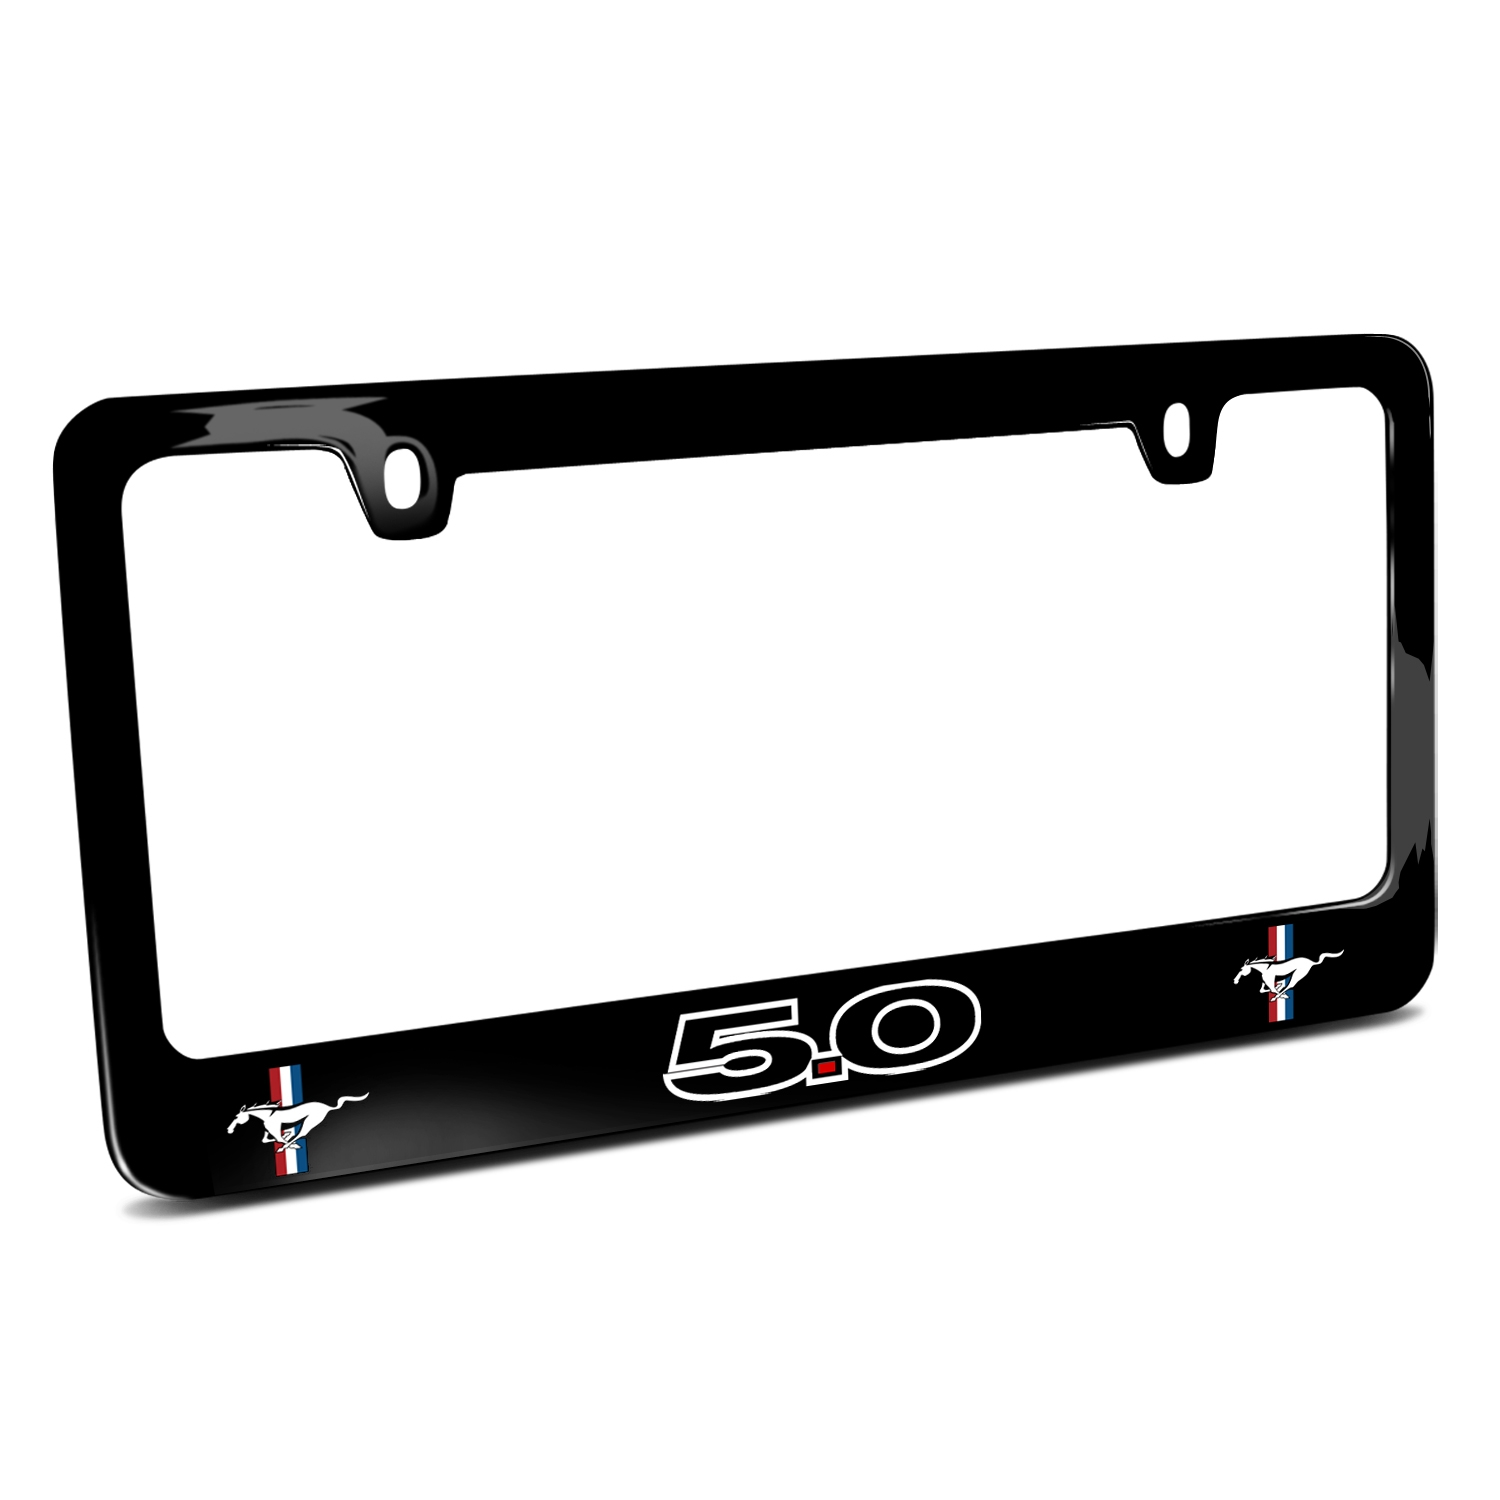 Ford Mustang GT 5.0 Outline Dual Logos Black Metal License Plate Frame